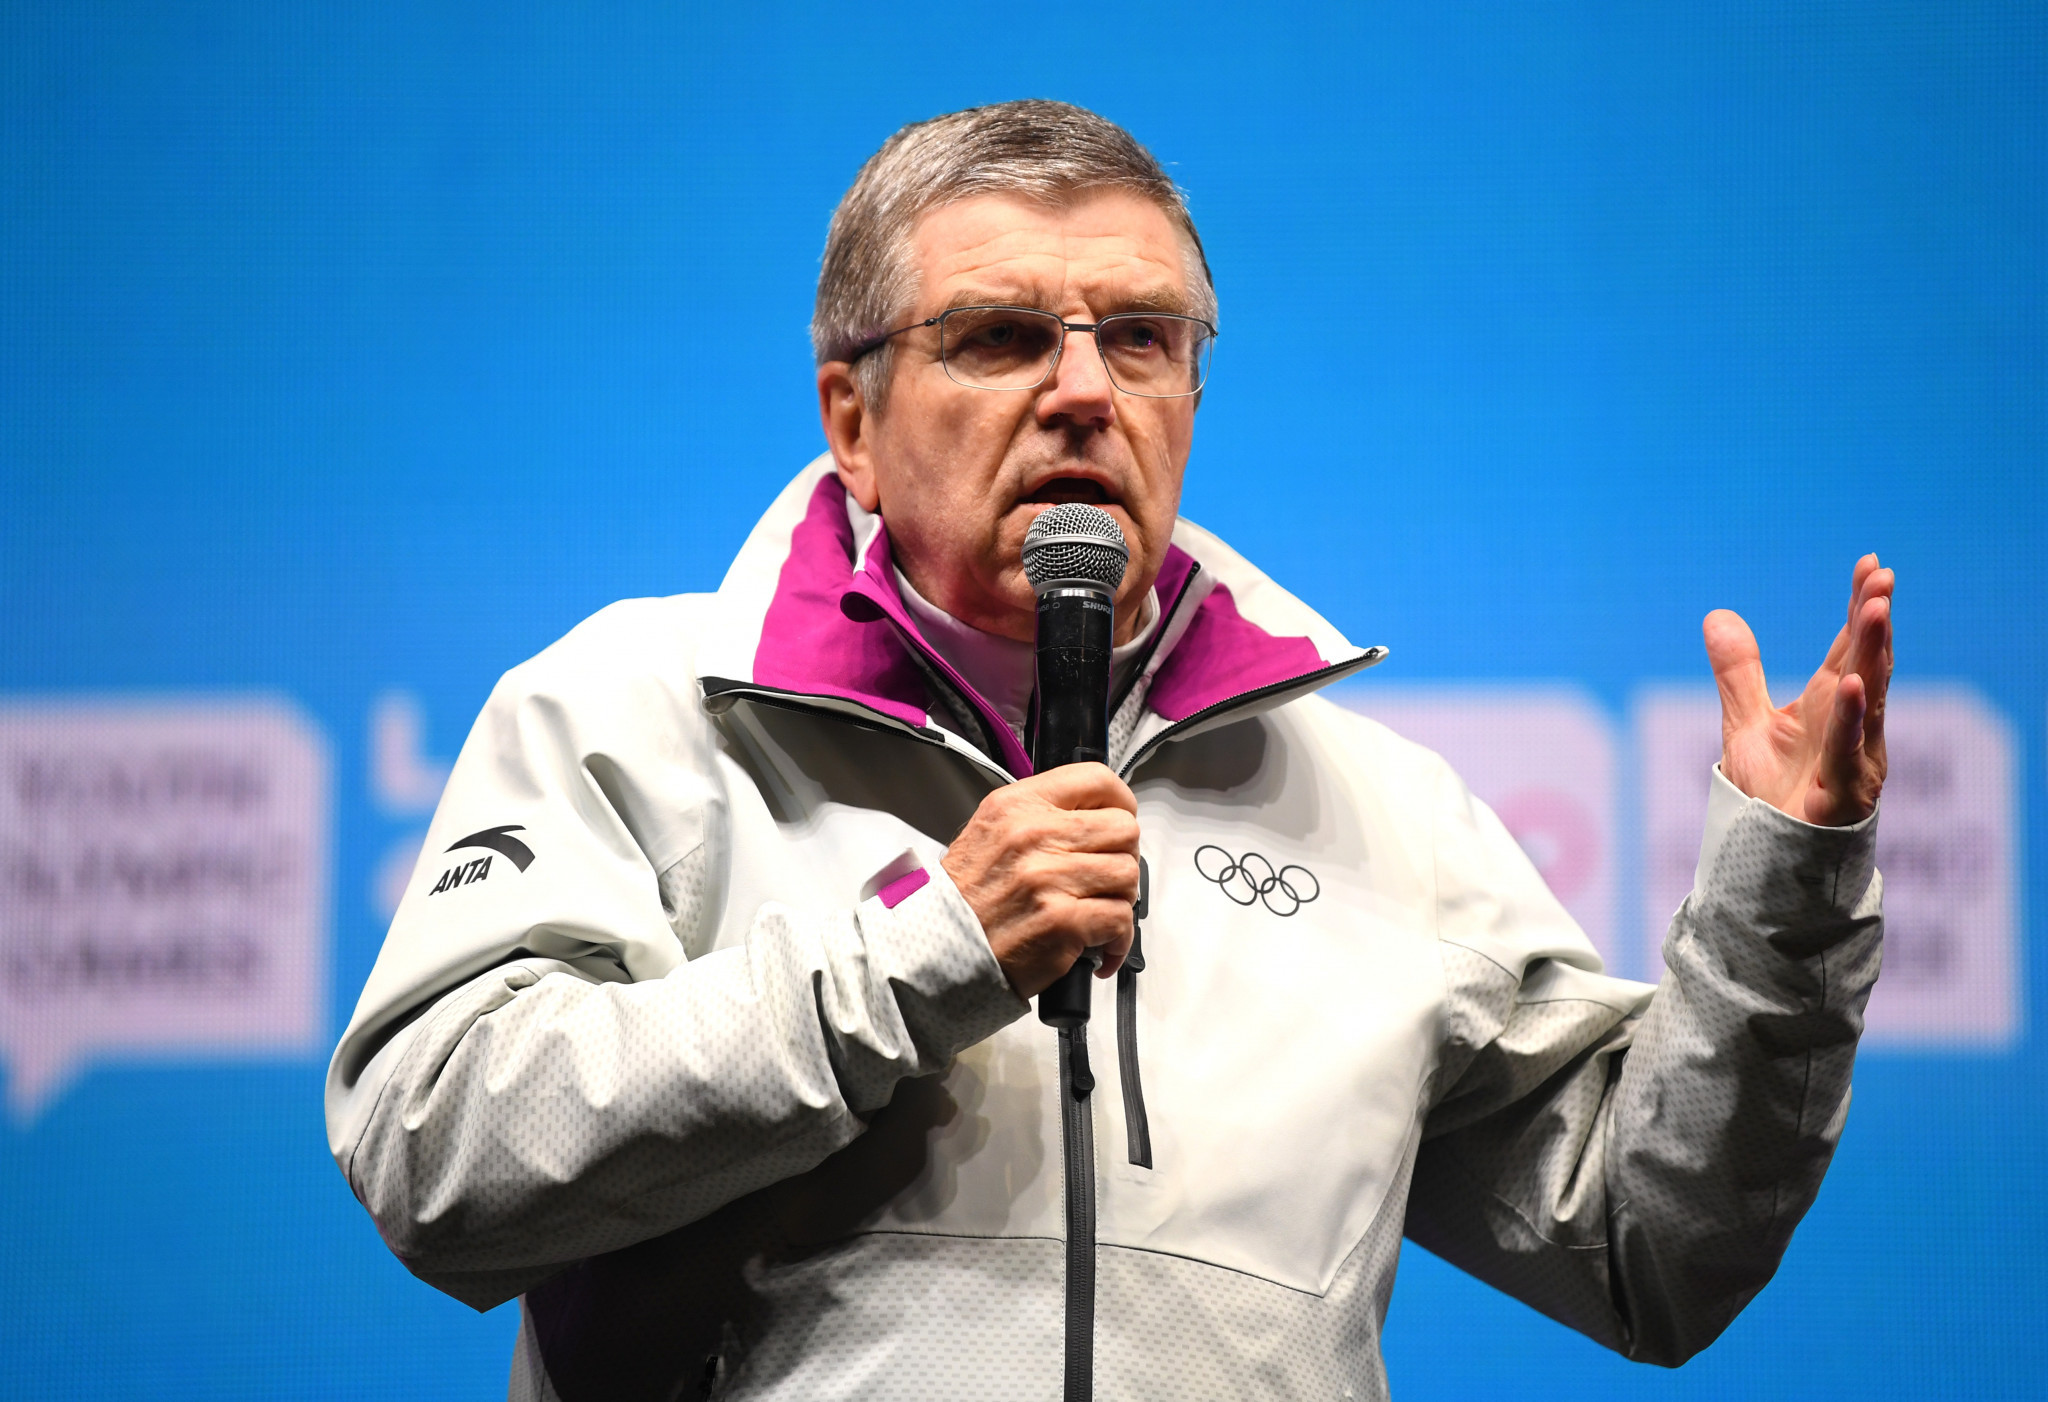 Thomas Bach has claimed the IOC is fully committed to the success of Tokyo 2020 ©Getty Images